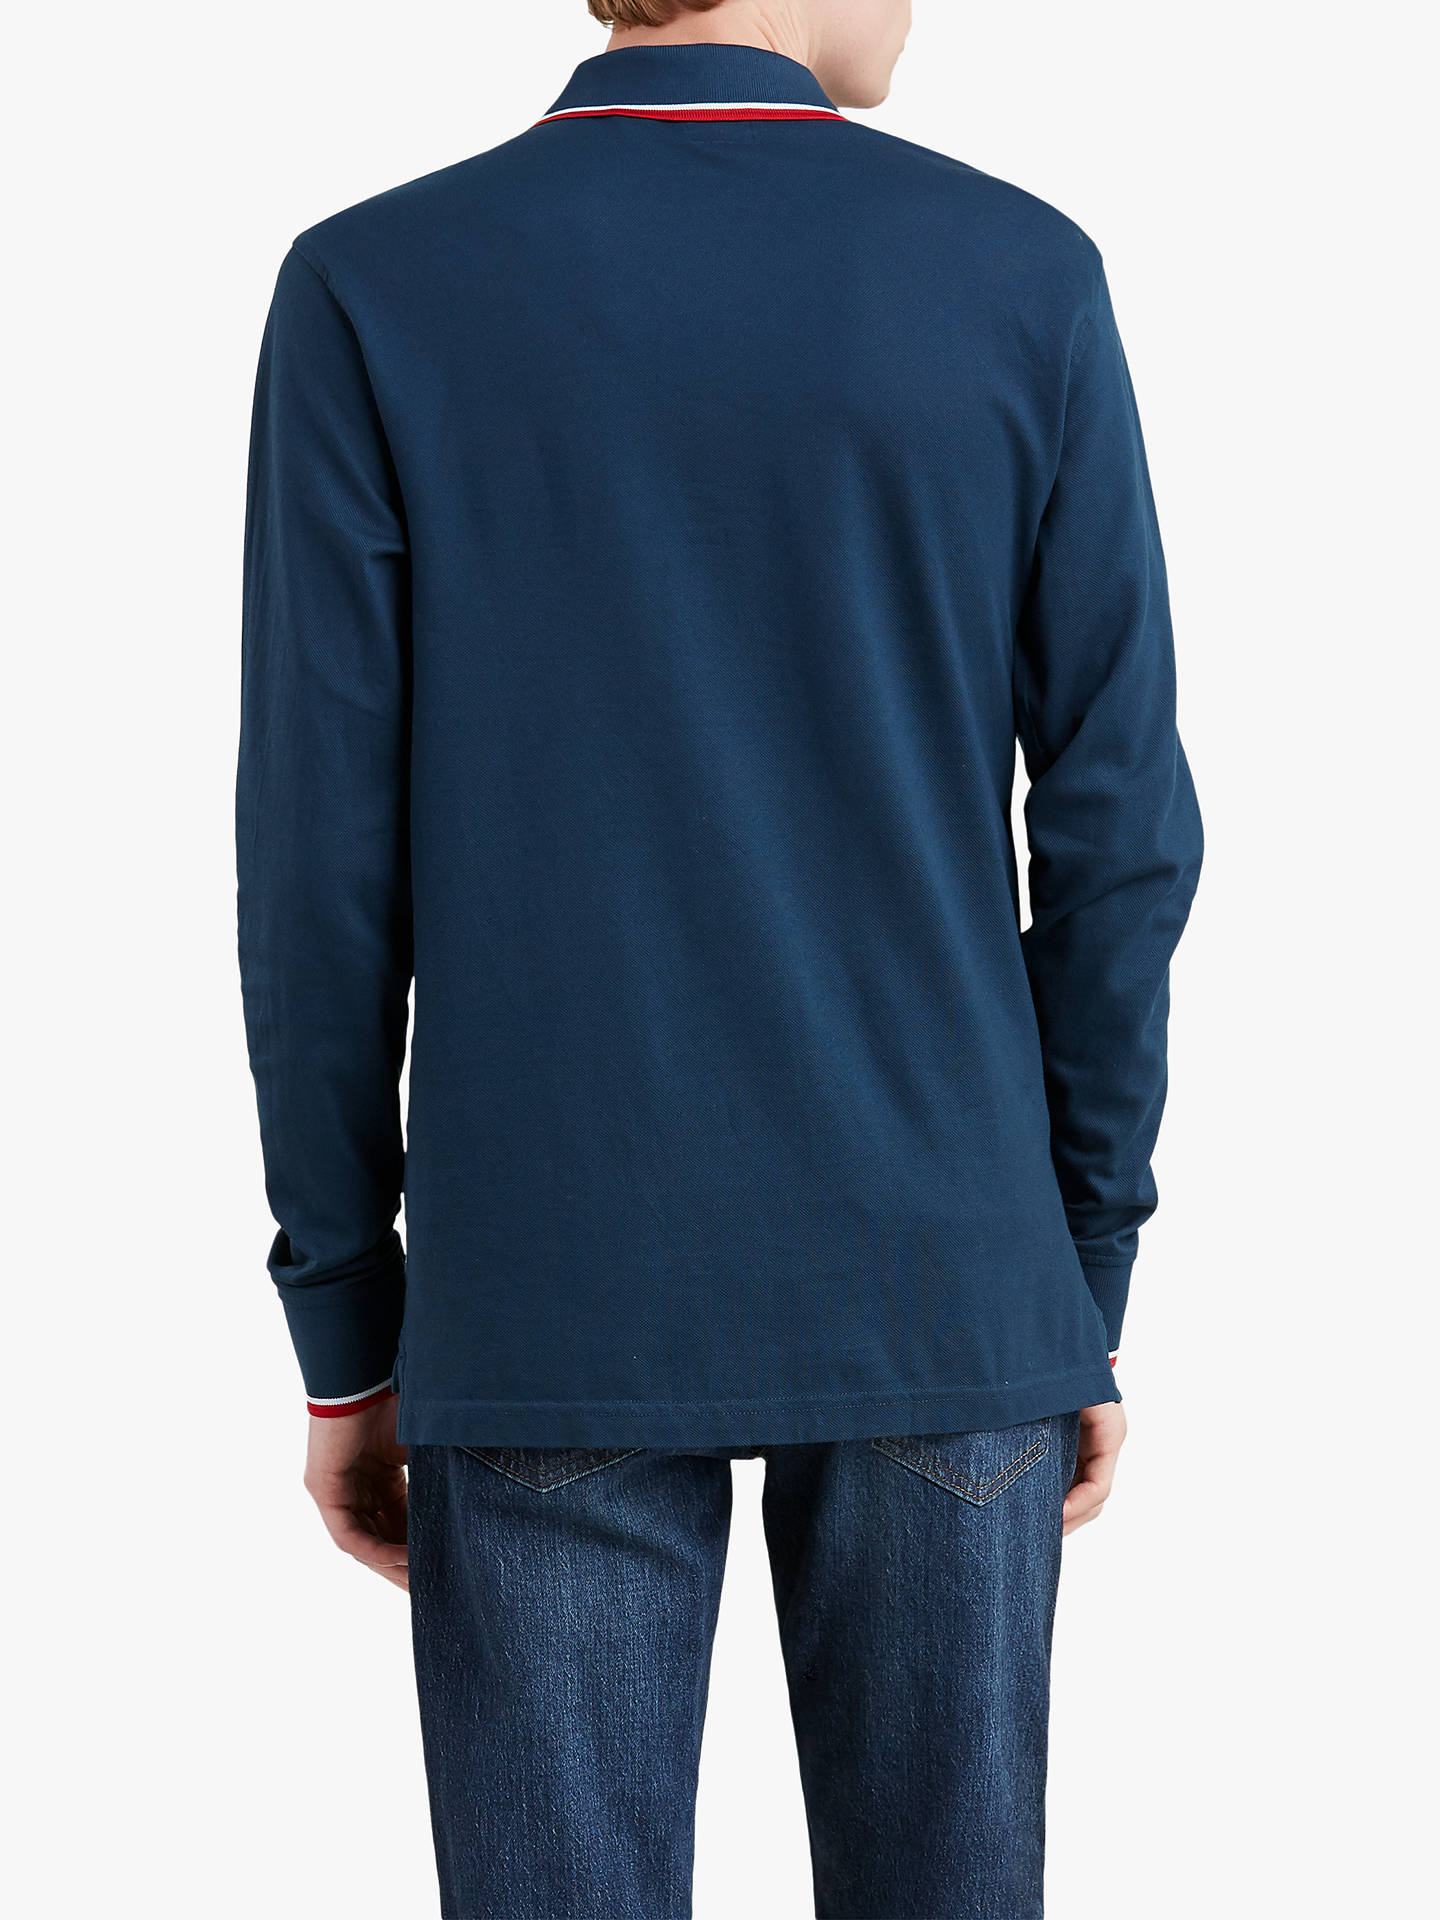 b7f8aa563743 ... Buy Levi's Long Sleeve Modern Hm Polo Shirt, Dress Blue, M Online at  johnlewis ...